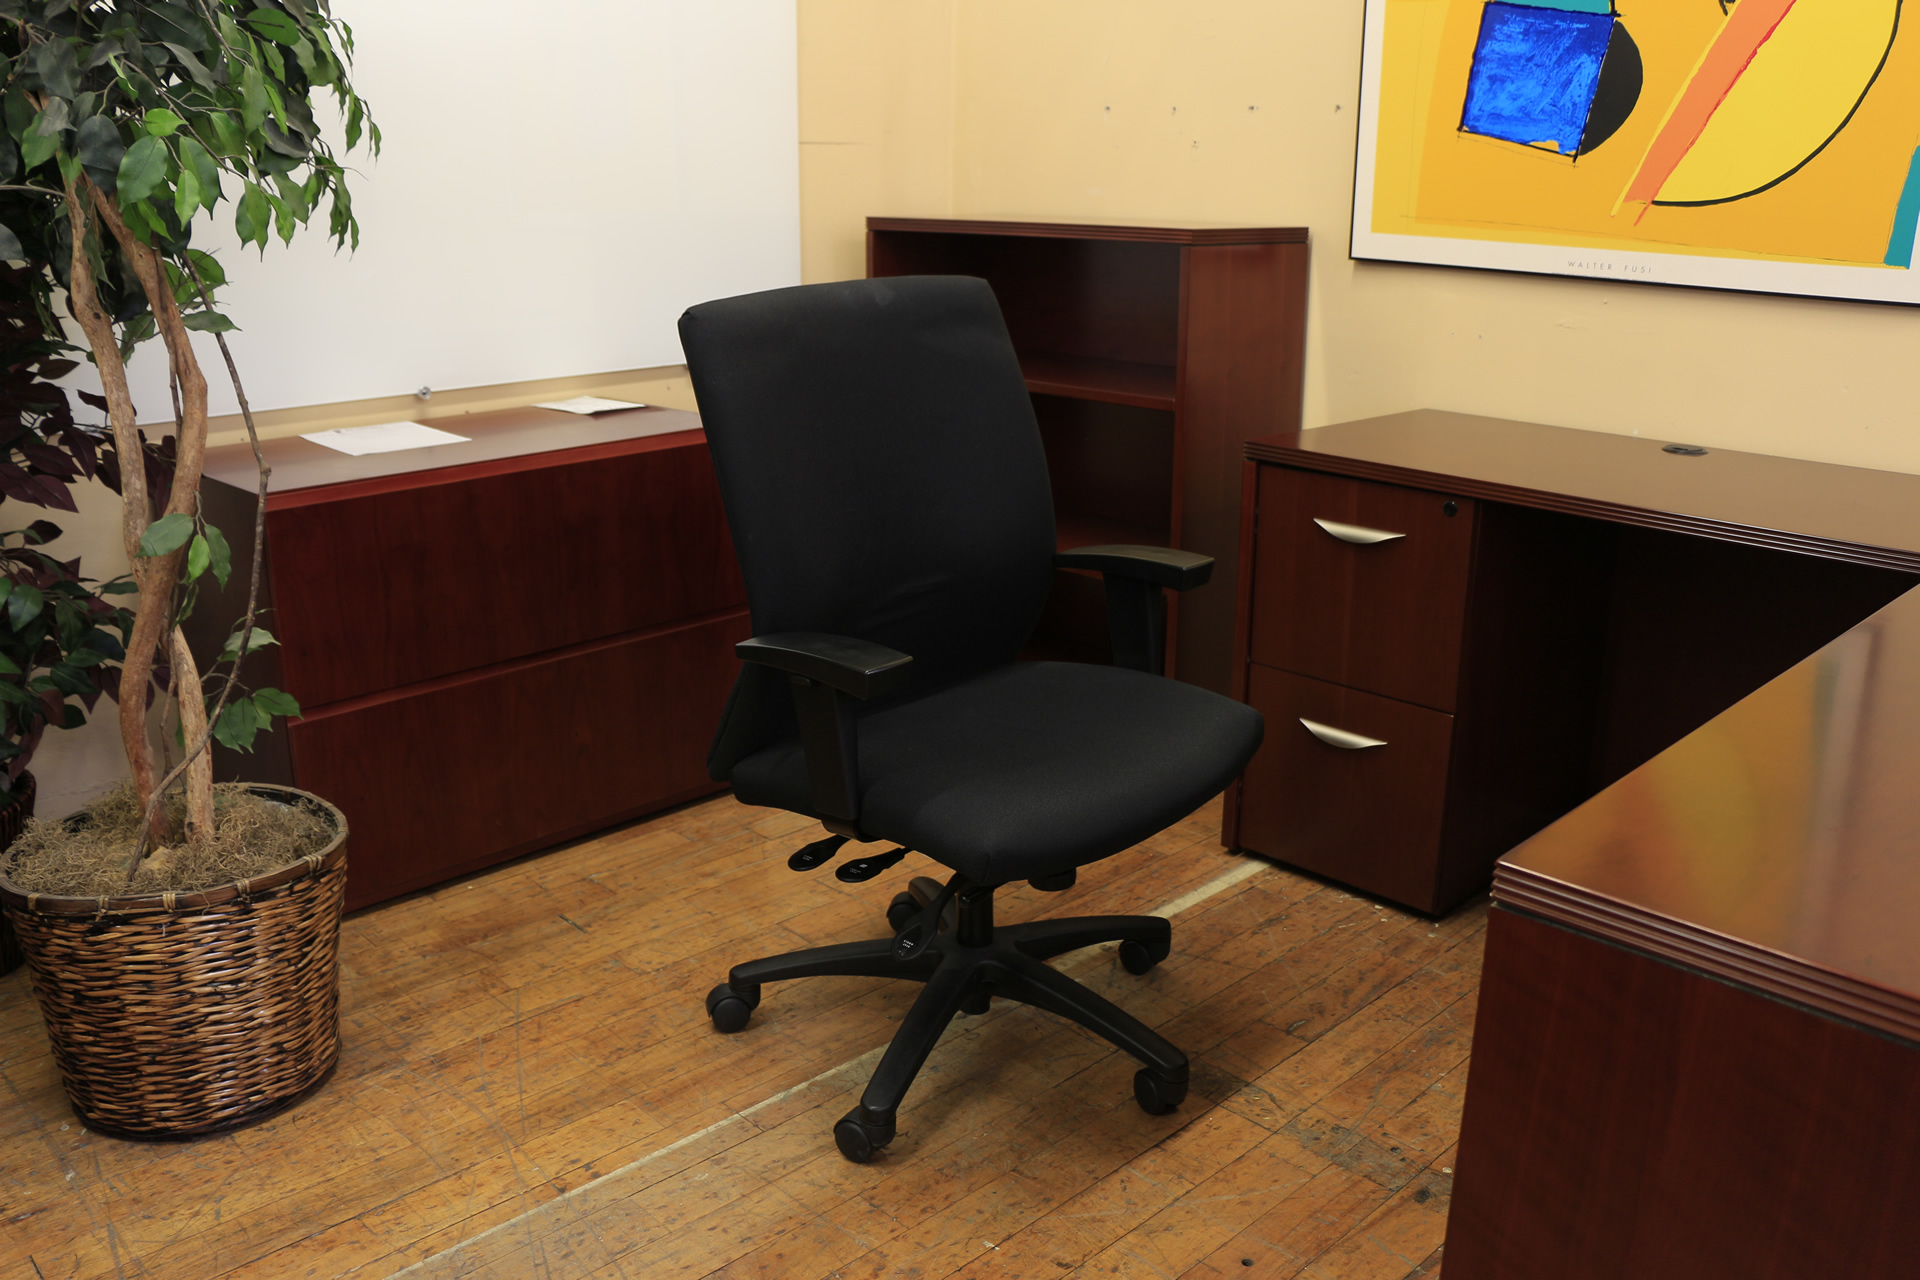 peartreeofficefurniture_peartreeofficefurniture_peartreeofficefurniture_2015-06-02_20-02-31.jpg